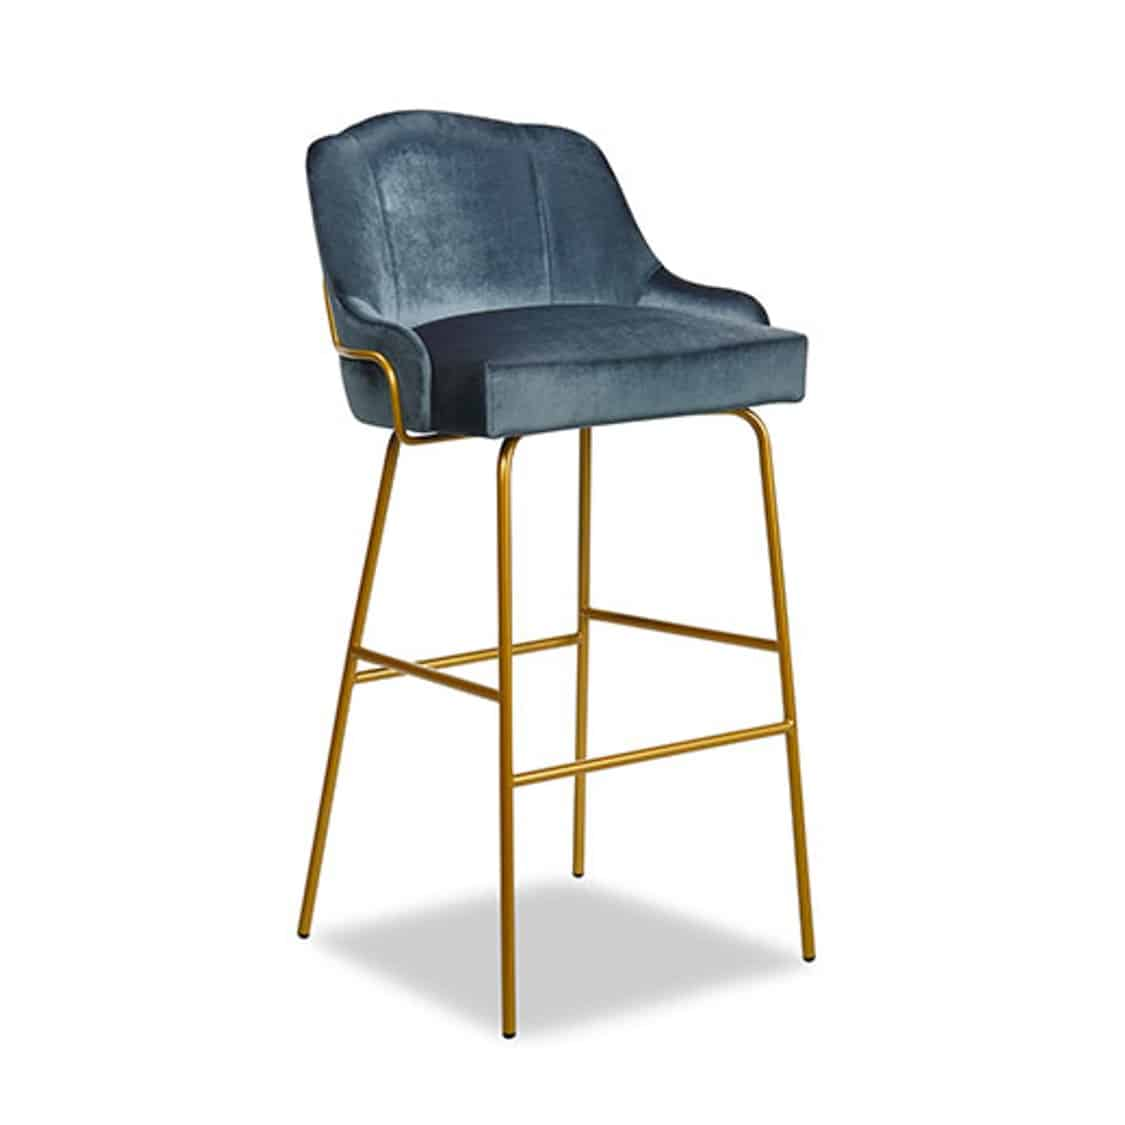 London Tube Bar Stool Available From DeFrae Contract Furniture Blue Velvet